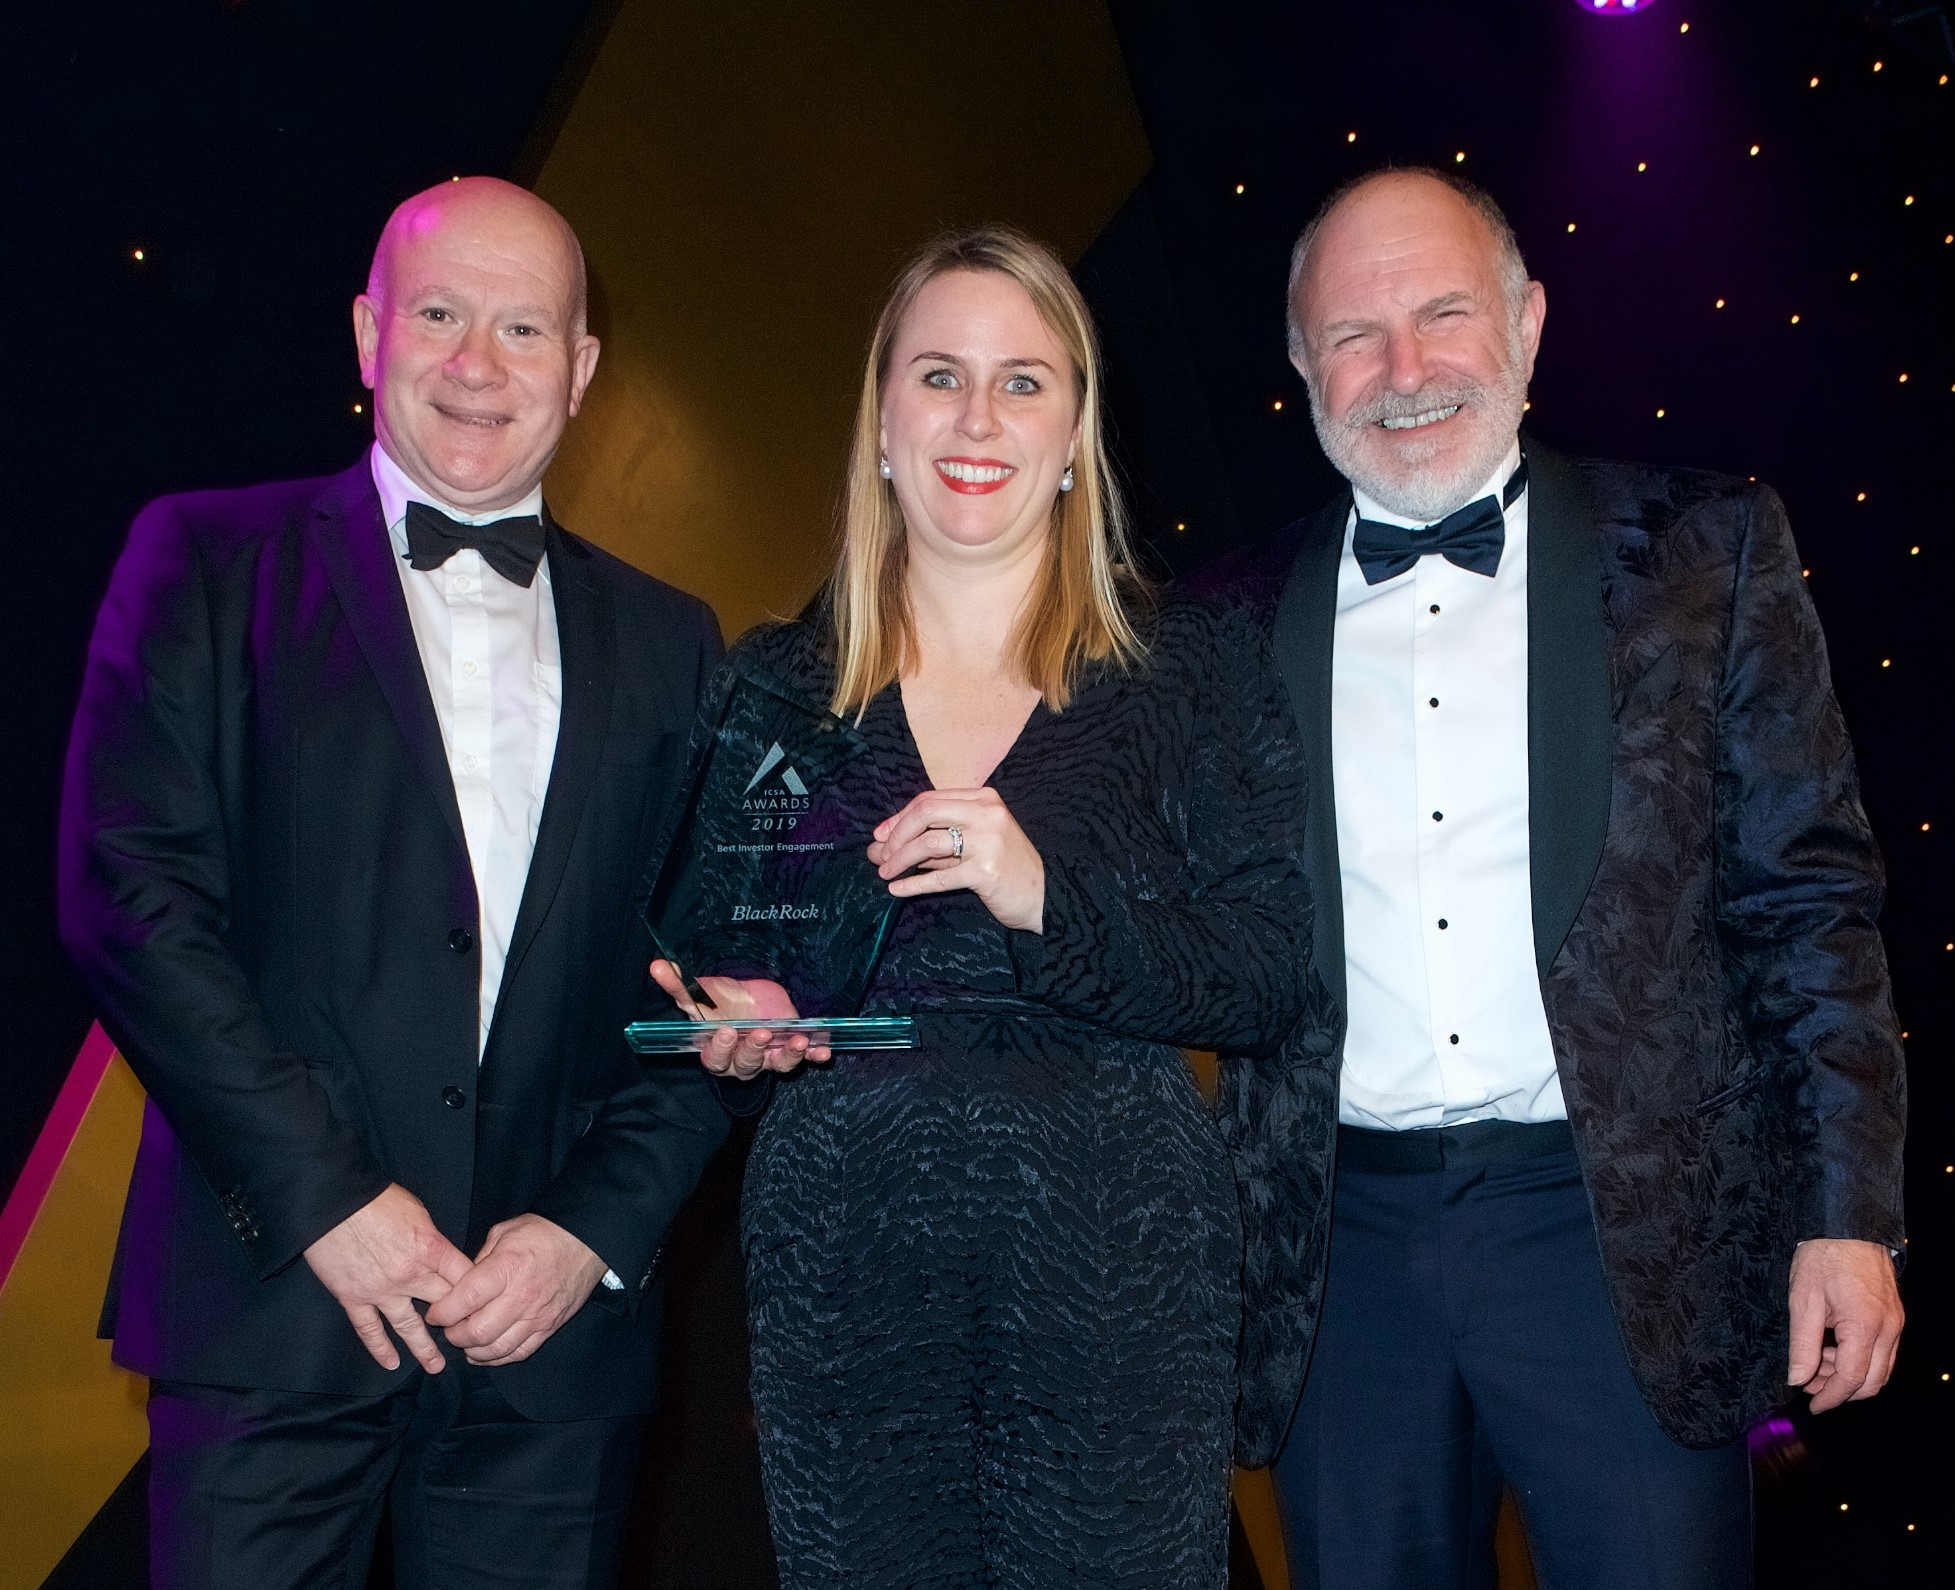 ICSA Awards - Best Investor Engagement